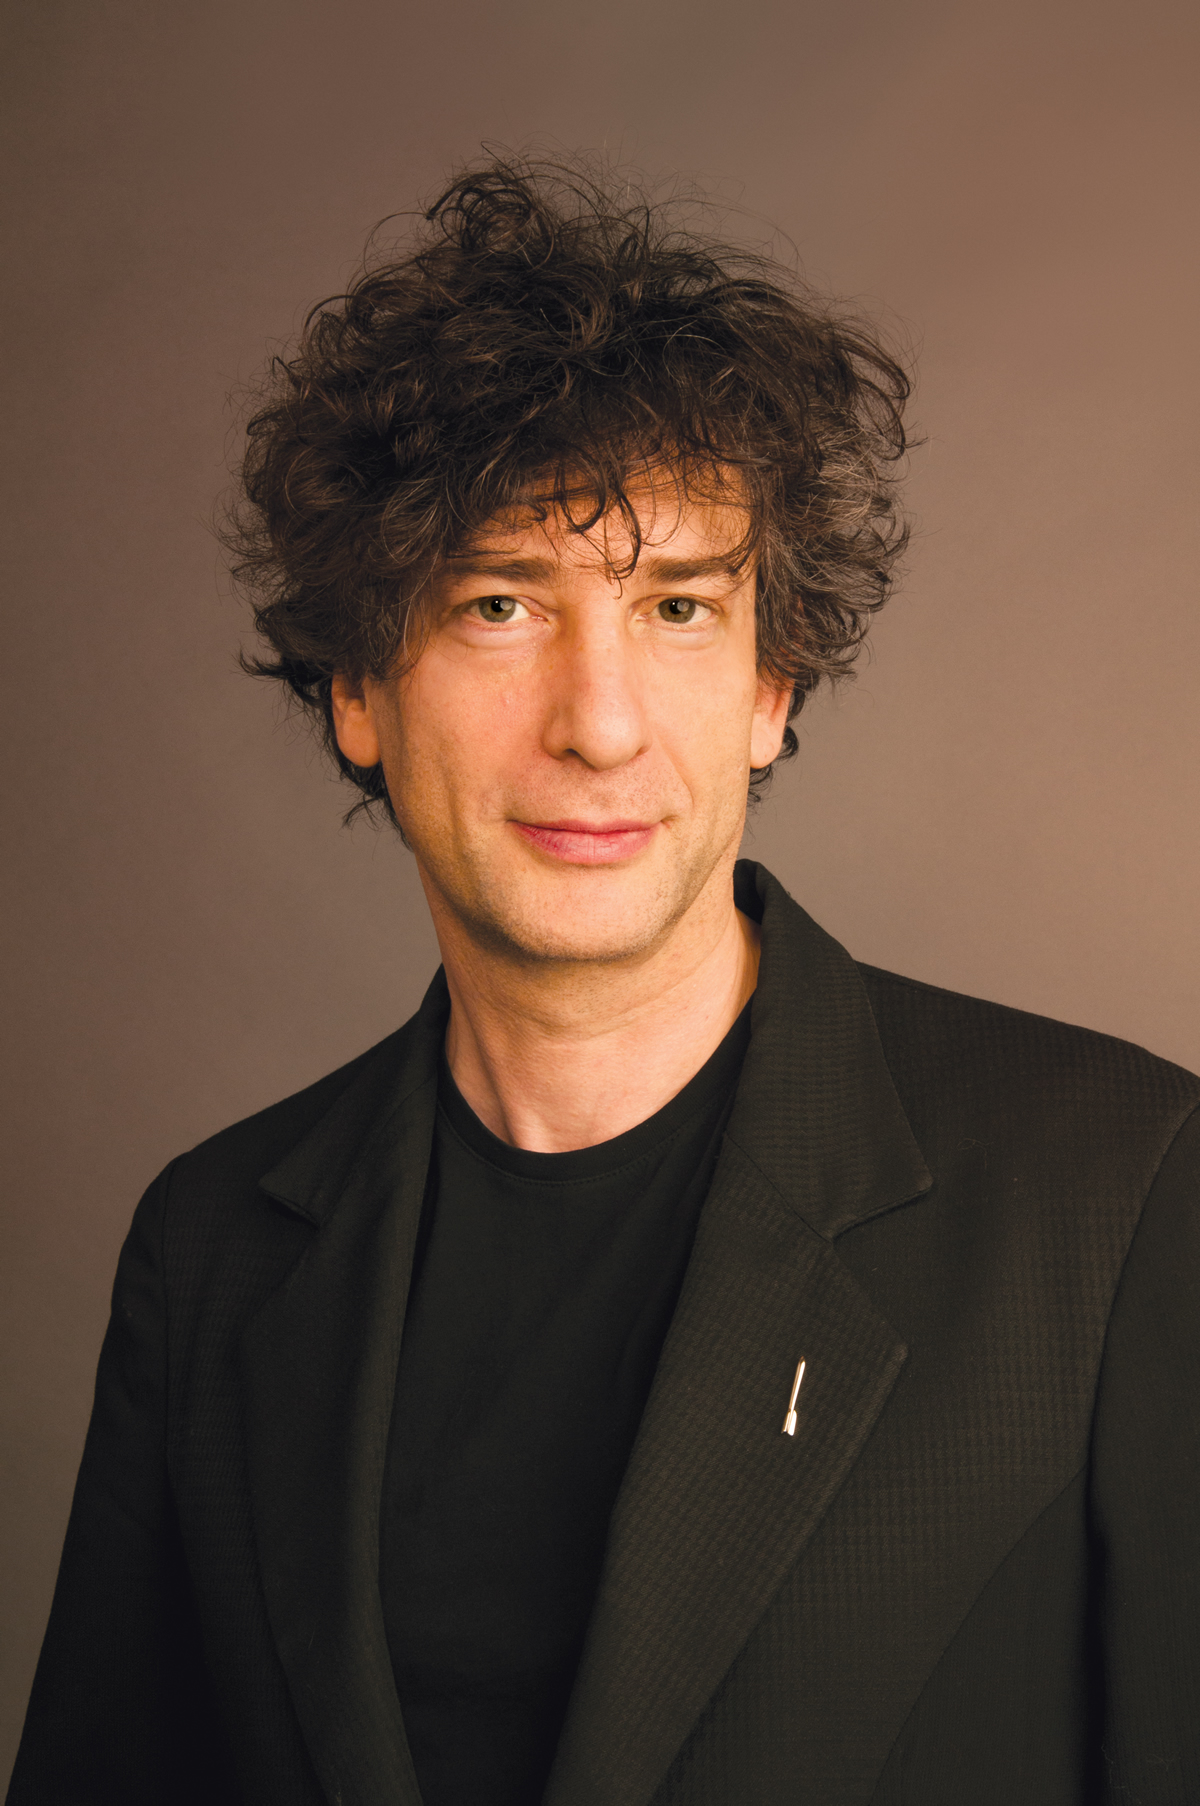 Neil Gaiman Crowd-Sources Poem on Twitter